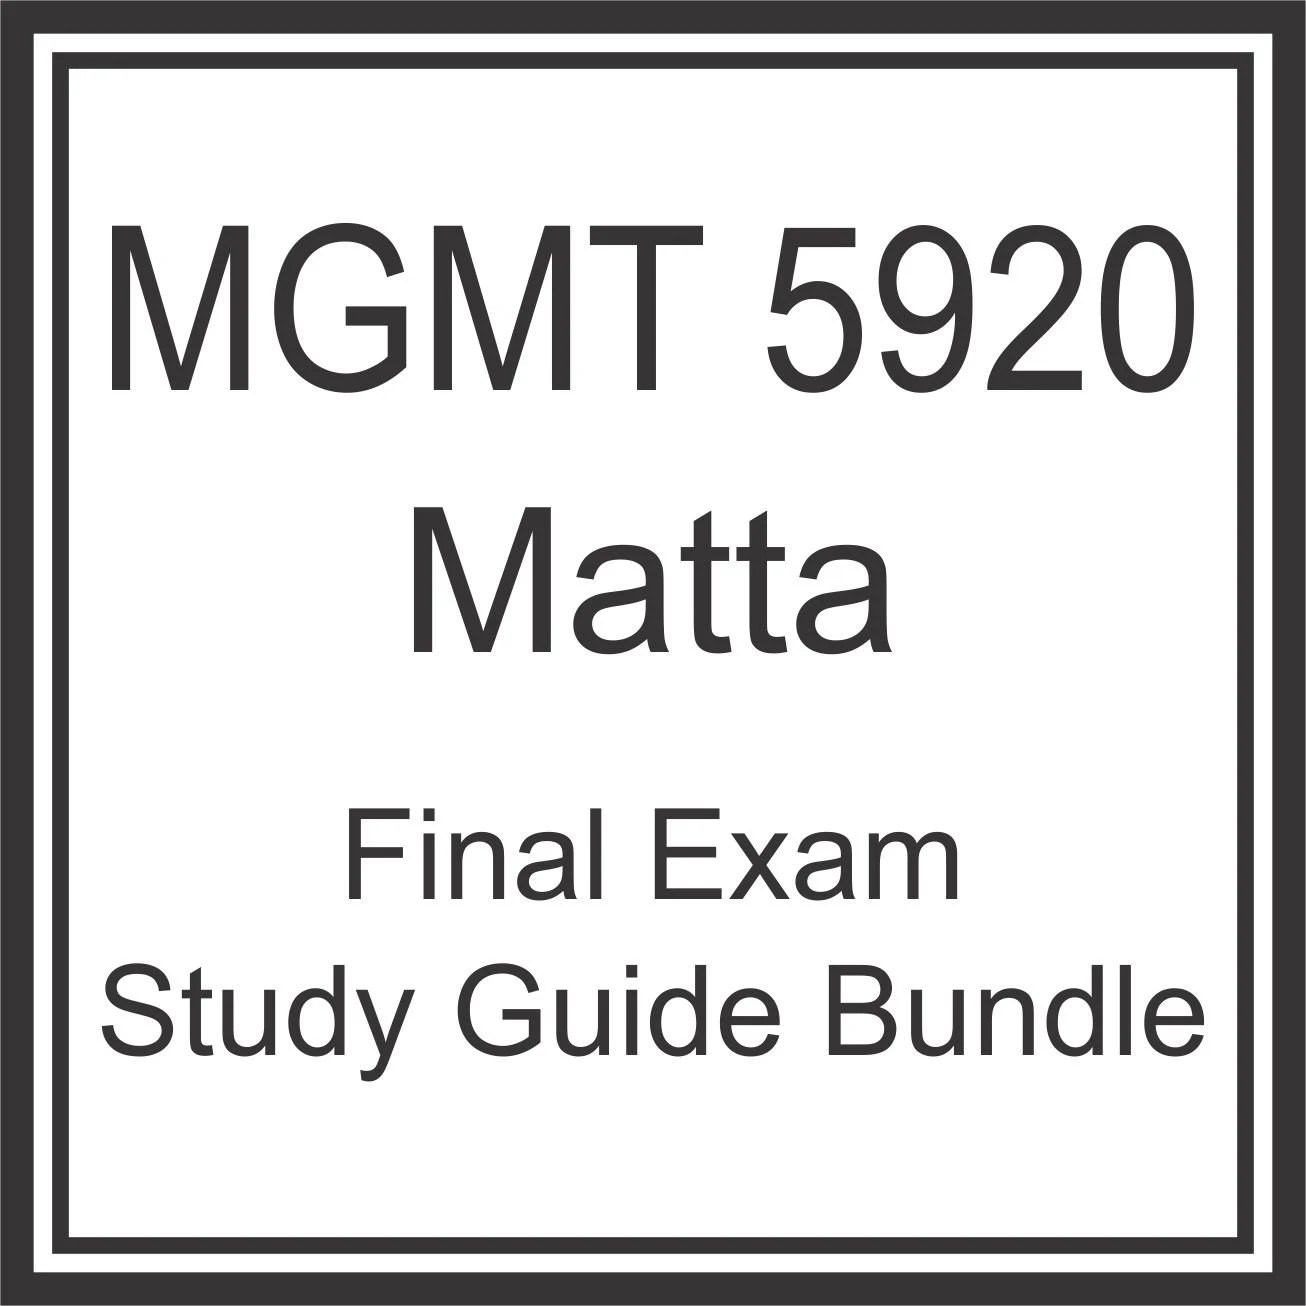 Items similar to Weekly Revision Timetable & General Study